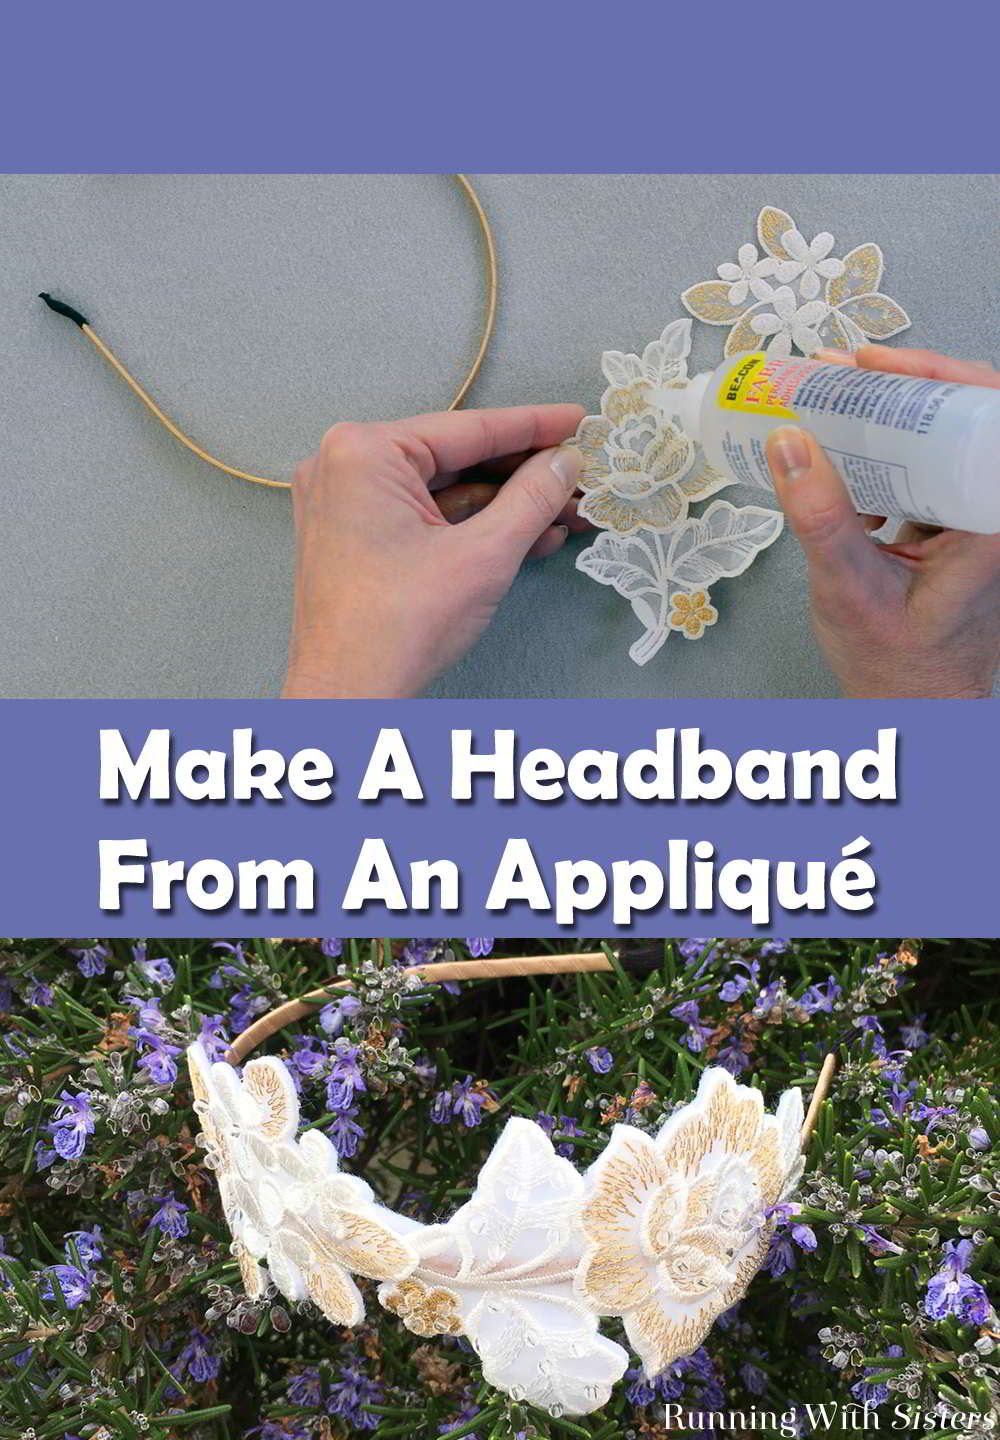 We love the look of fancy pearl and embroidery headbands. Here's how to make your own Appliqué Headband using pretty appliqués from the fabric store.